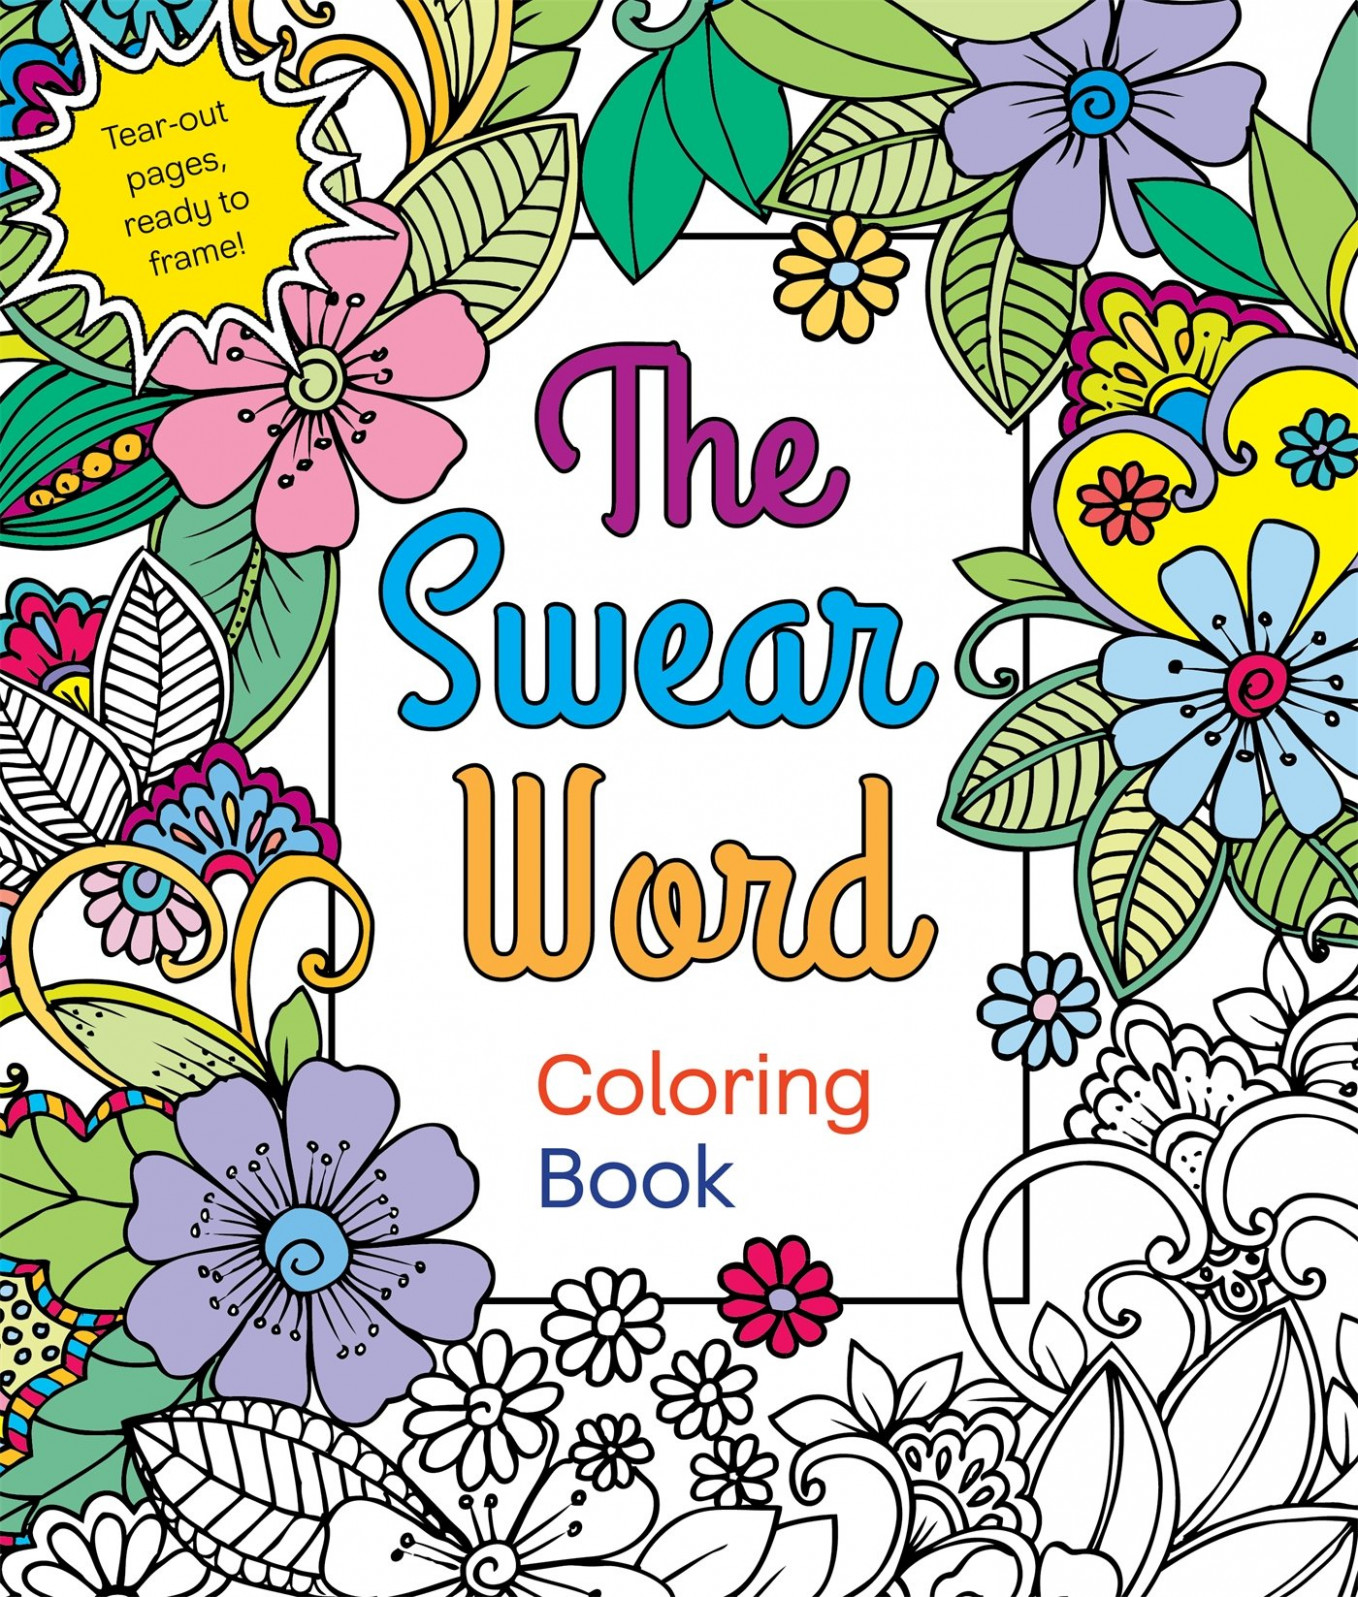 Amazon.com: The Swear Word Coloring Book (20): Hannah ..